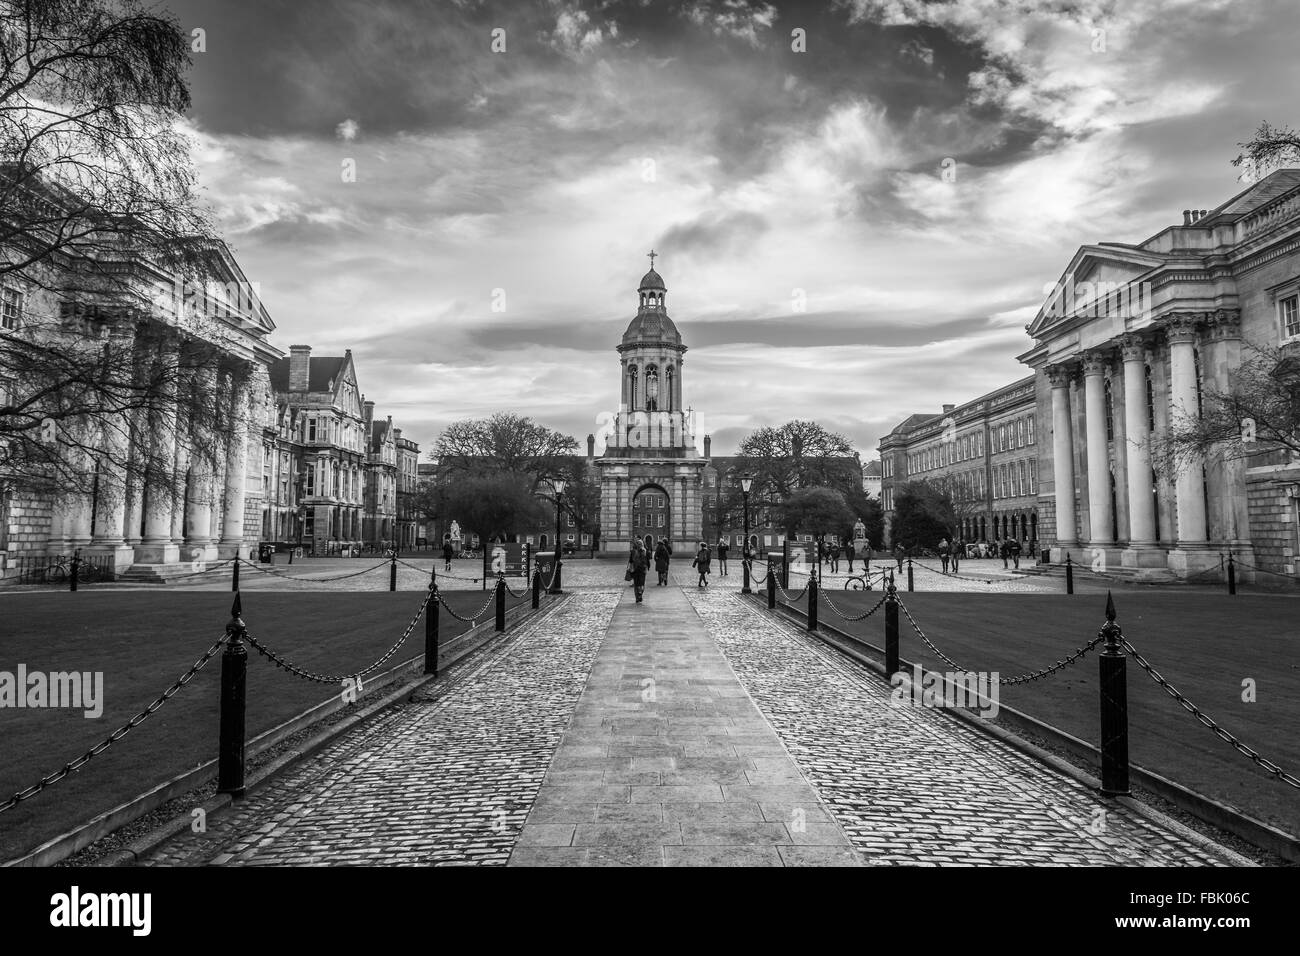 The front square of Trinity College in Dublin, Ireland in black and white. - Stock Image